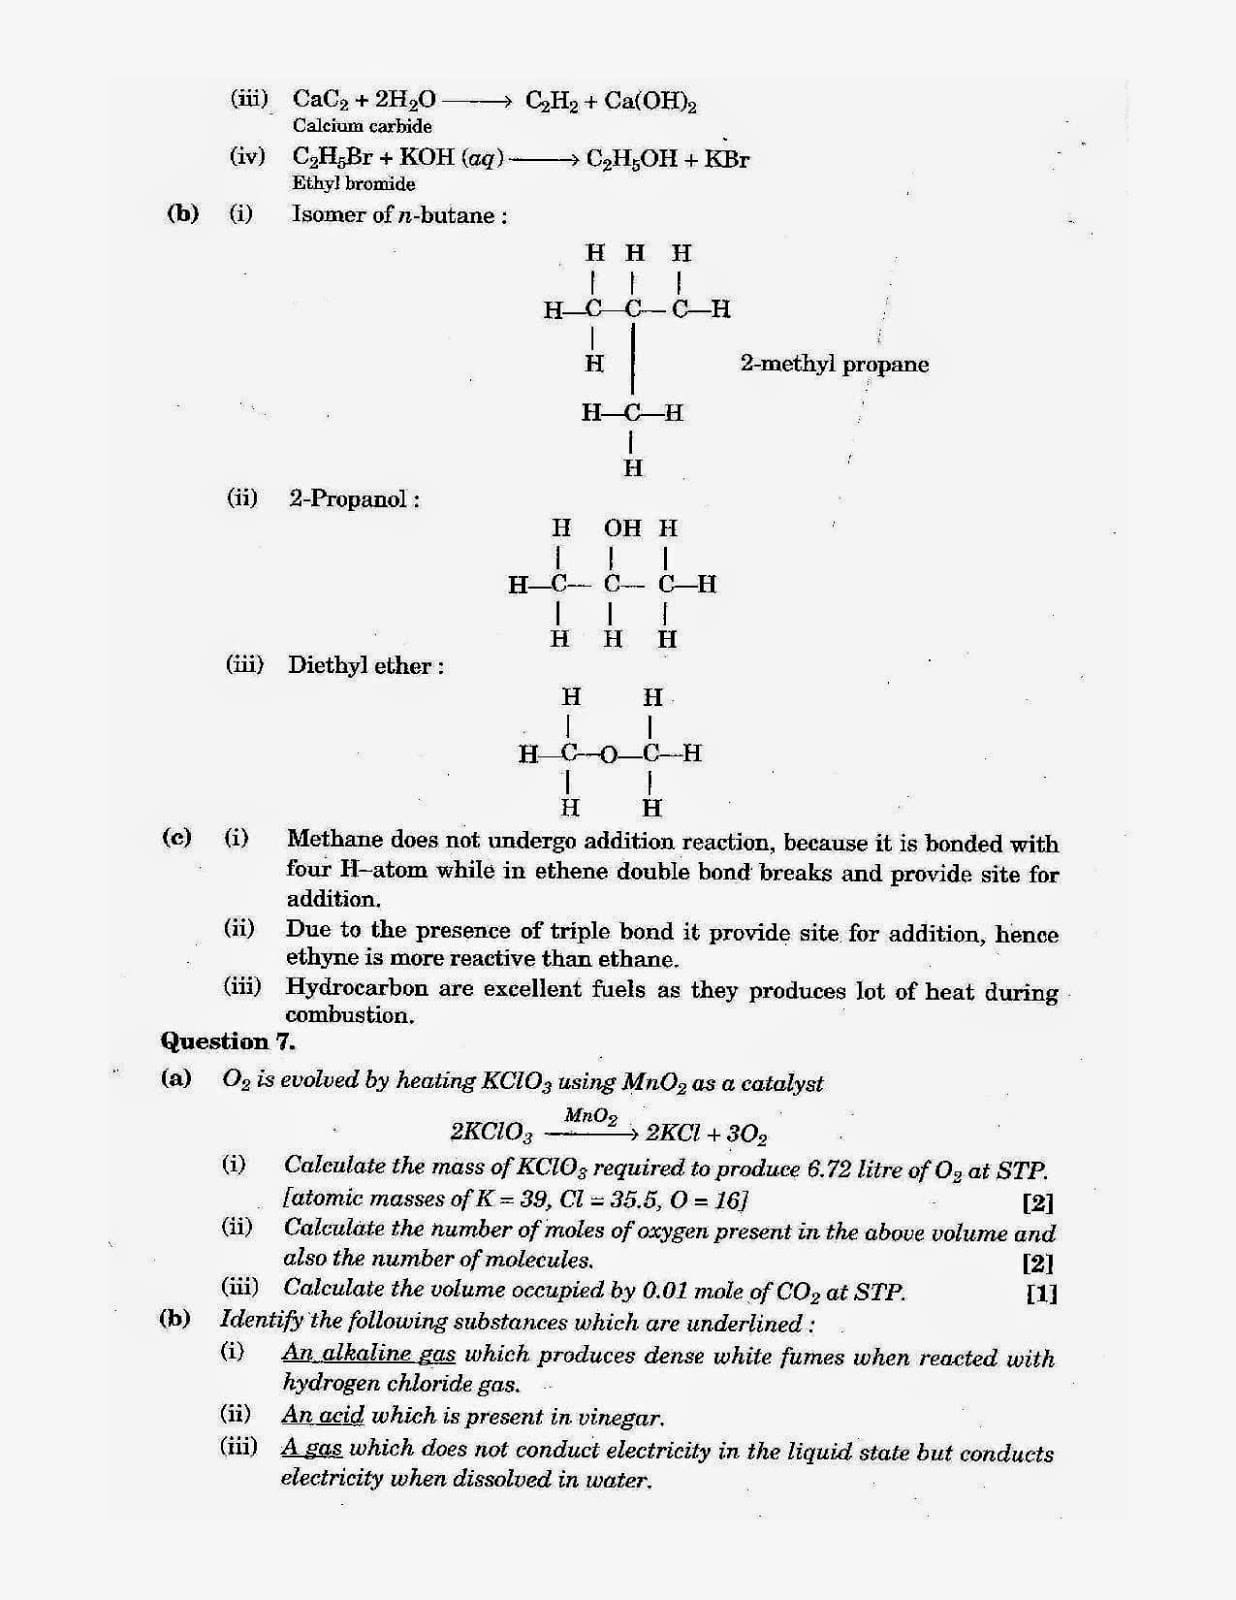 ICSE Class 10 Chemistry 2013 Question Paper